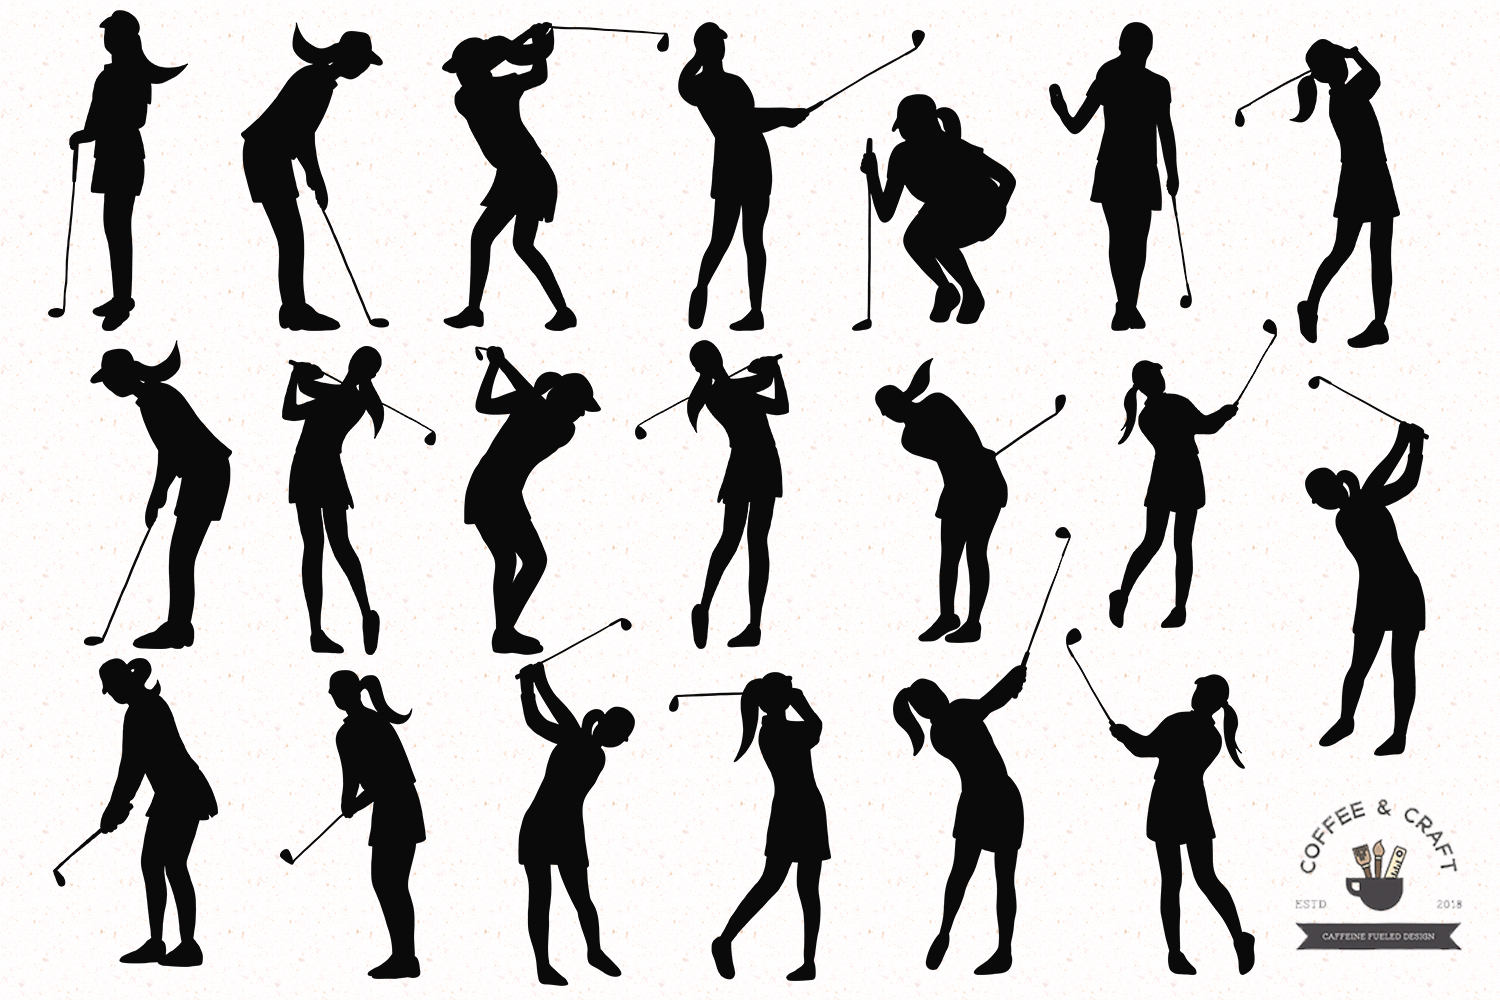 Golfer silhouettes female example image 2